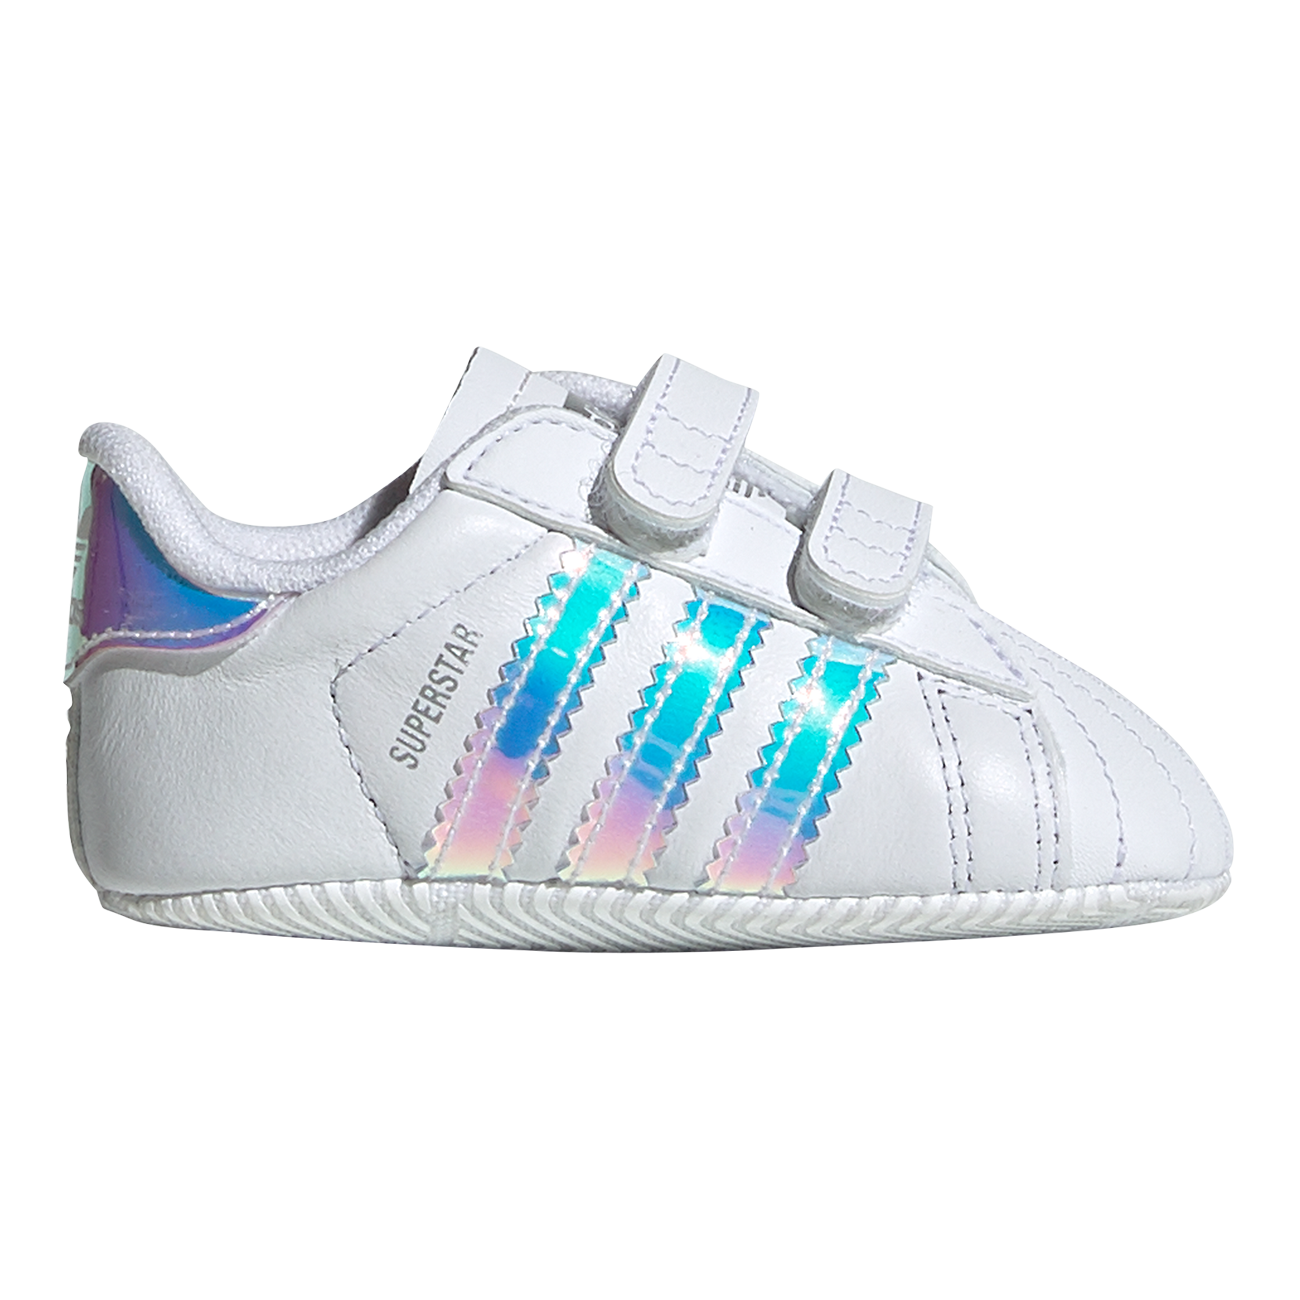 adidas Baby Superstar Crib Sneakers White/Metallic